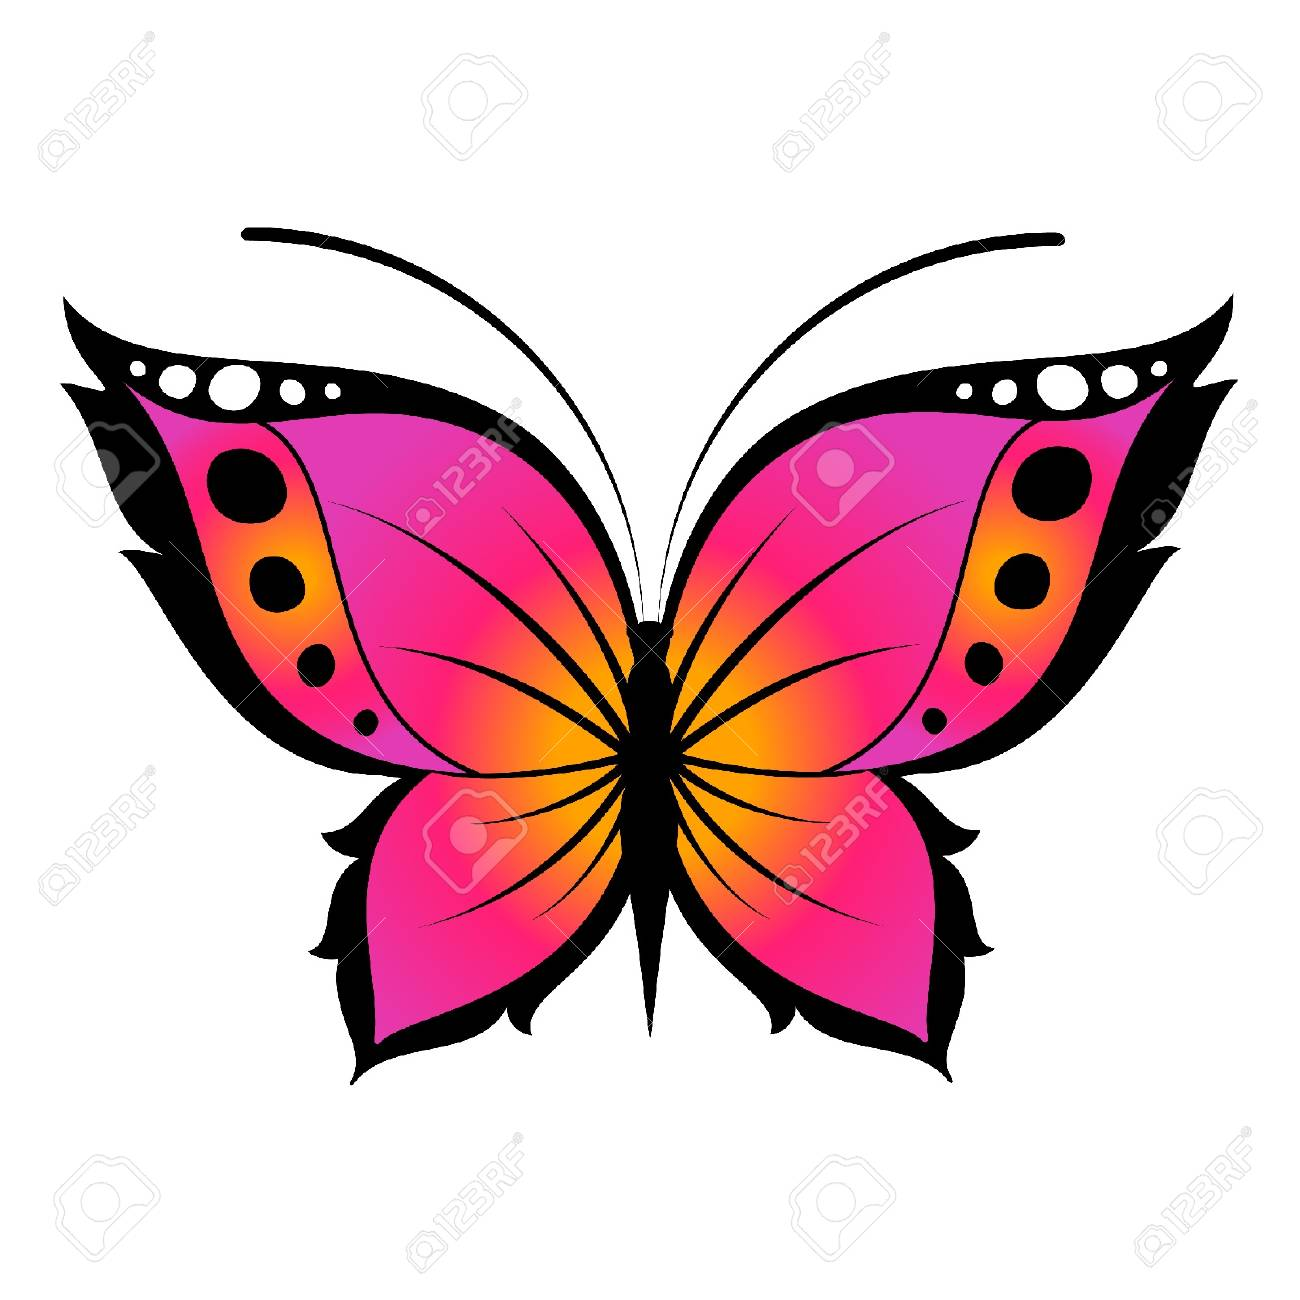 The beautiful butterfly. Stock Vector - 9796826